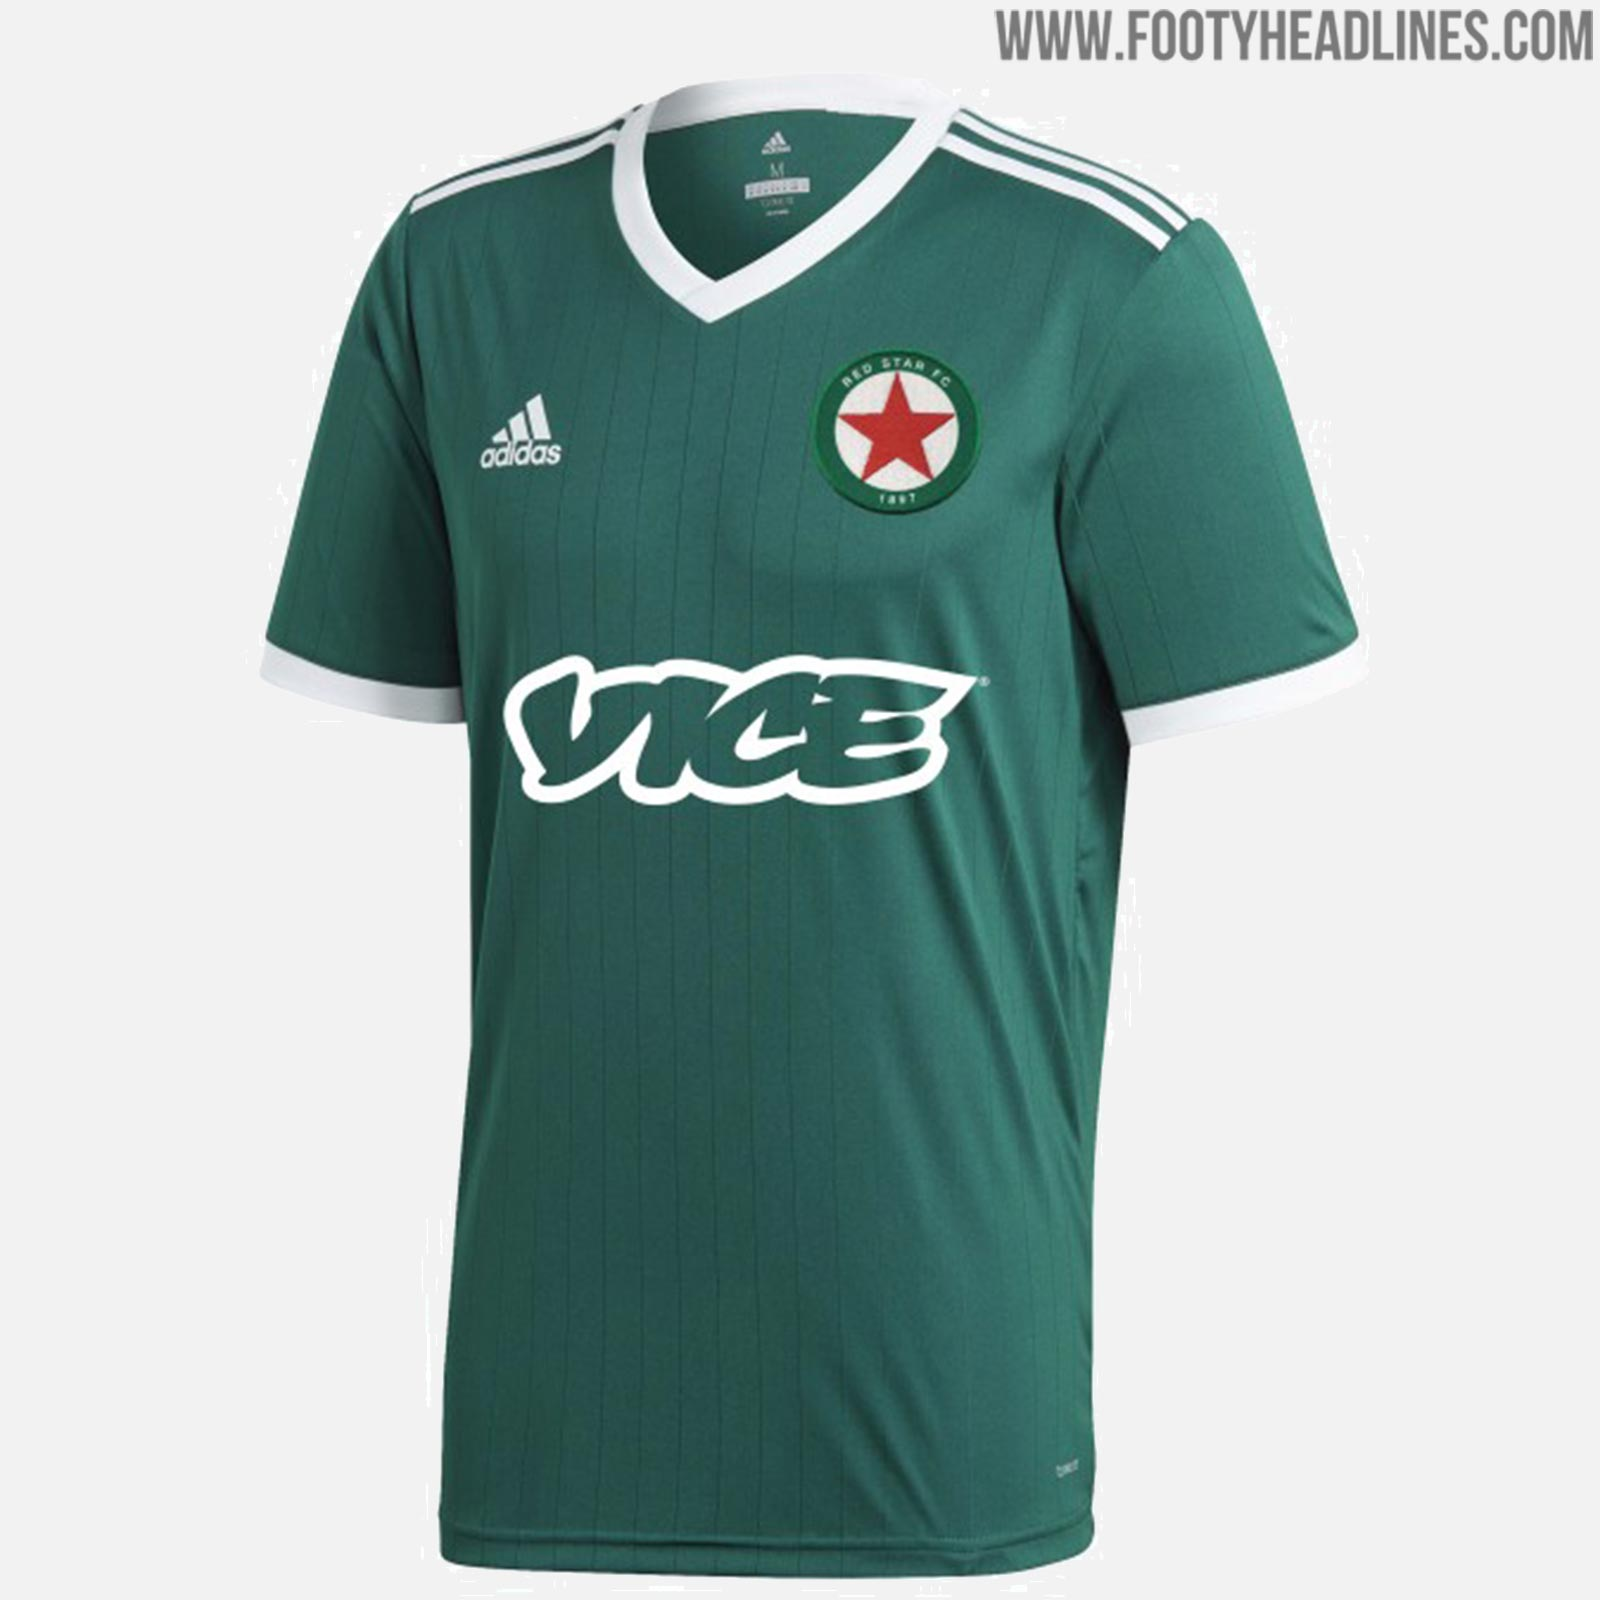 8897f1f10 Sponsored by Vice - Adidas Red Star FC 18-19 Home   Away Kits ...